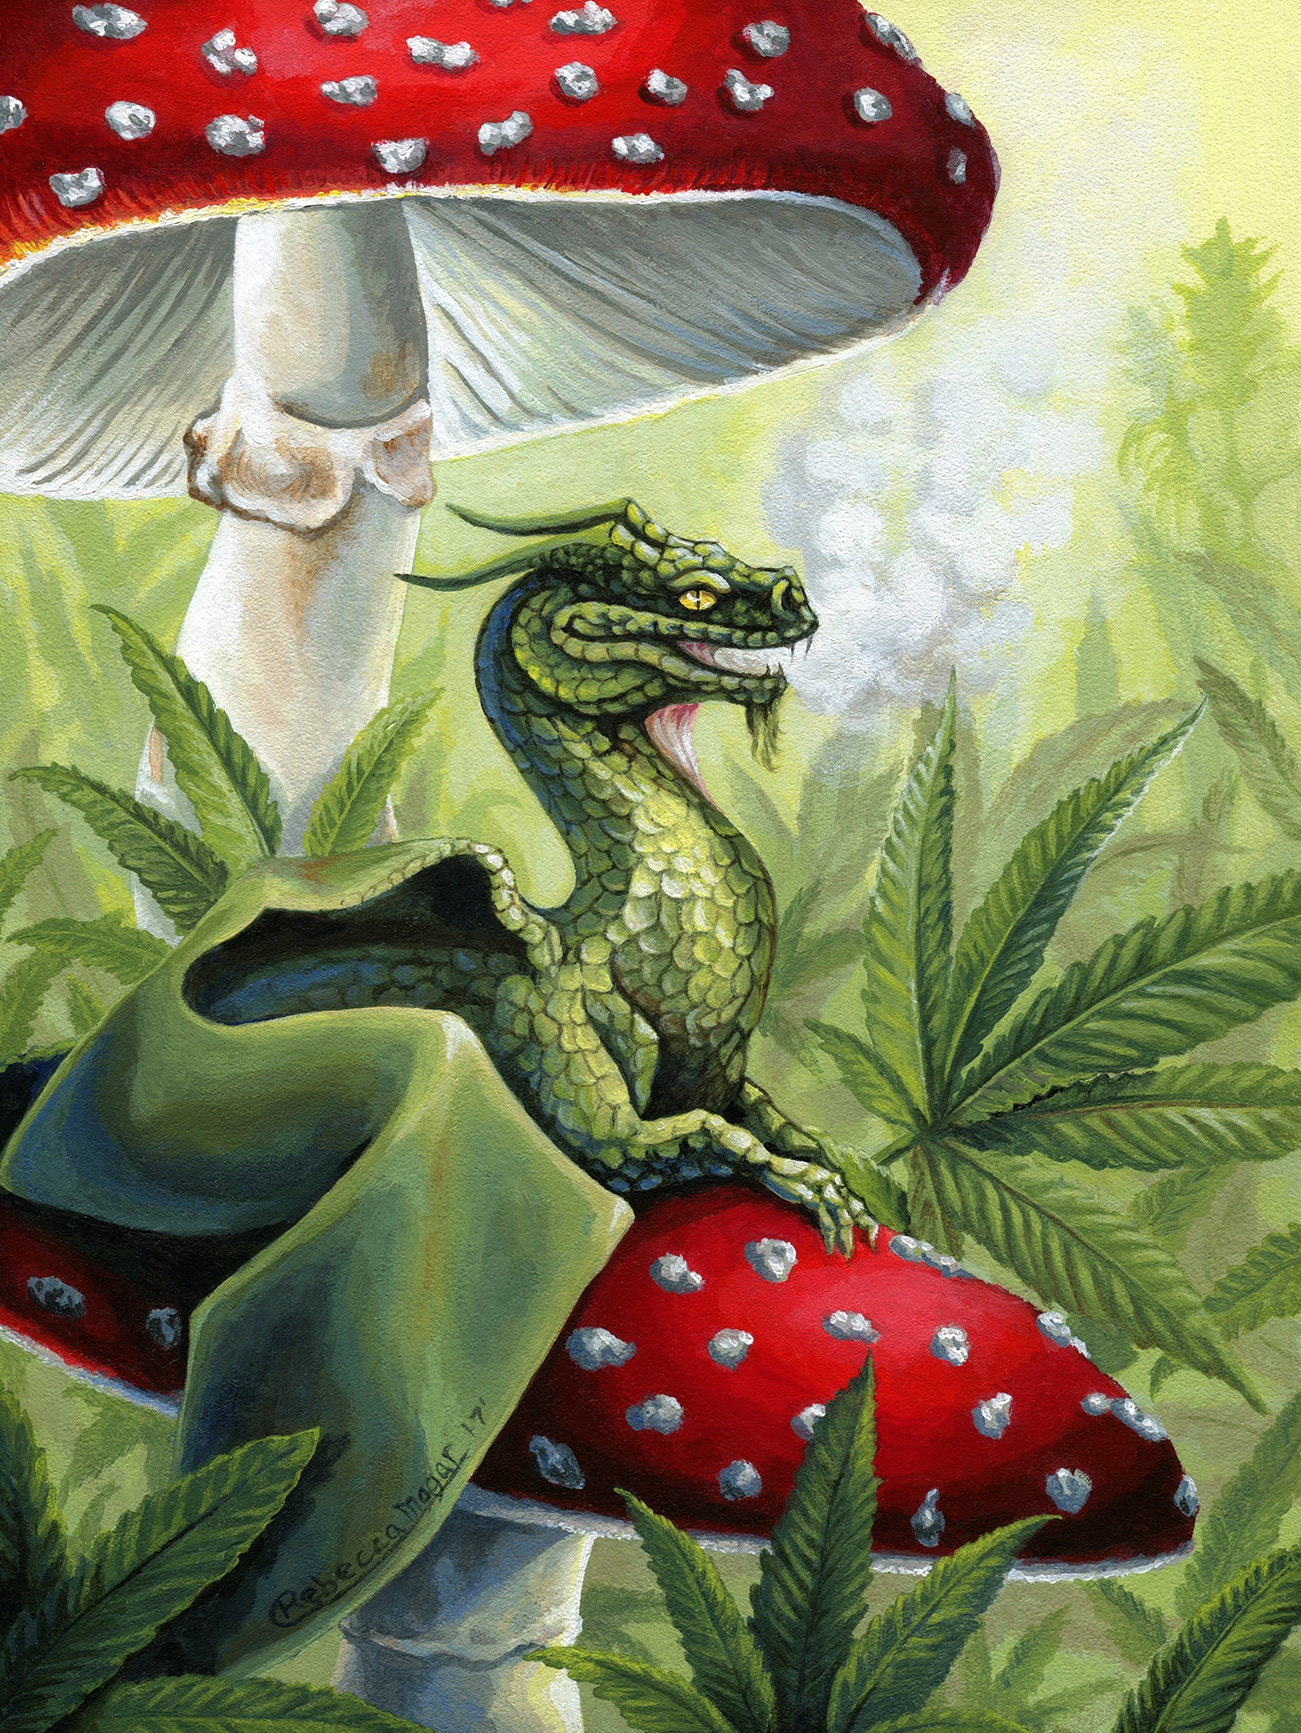 Green Dragon Sitting on Toadstools with Cannabis by Rebecca Magar